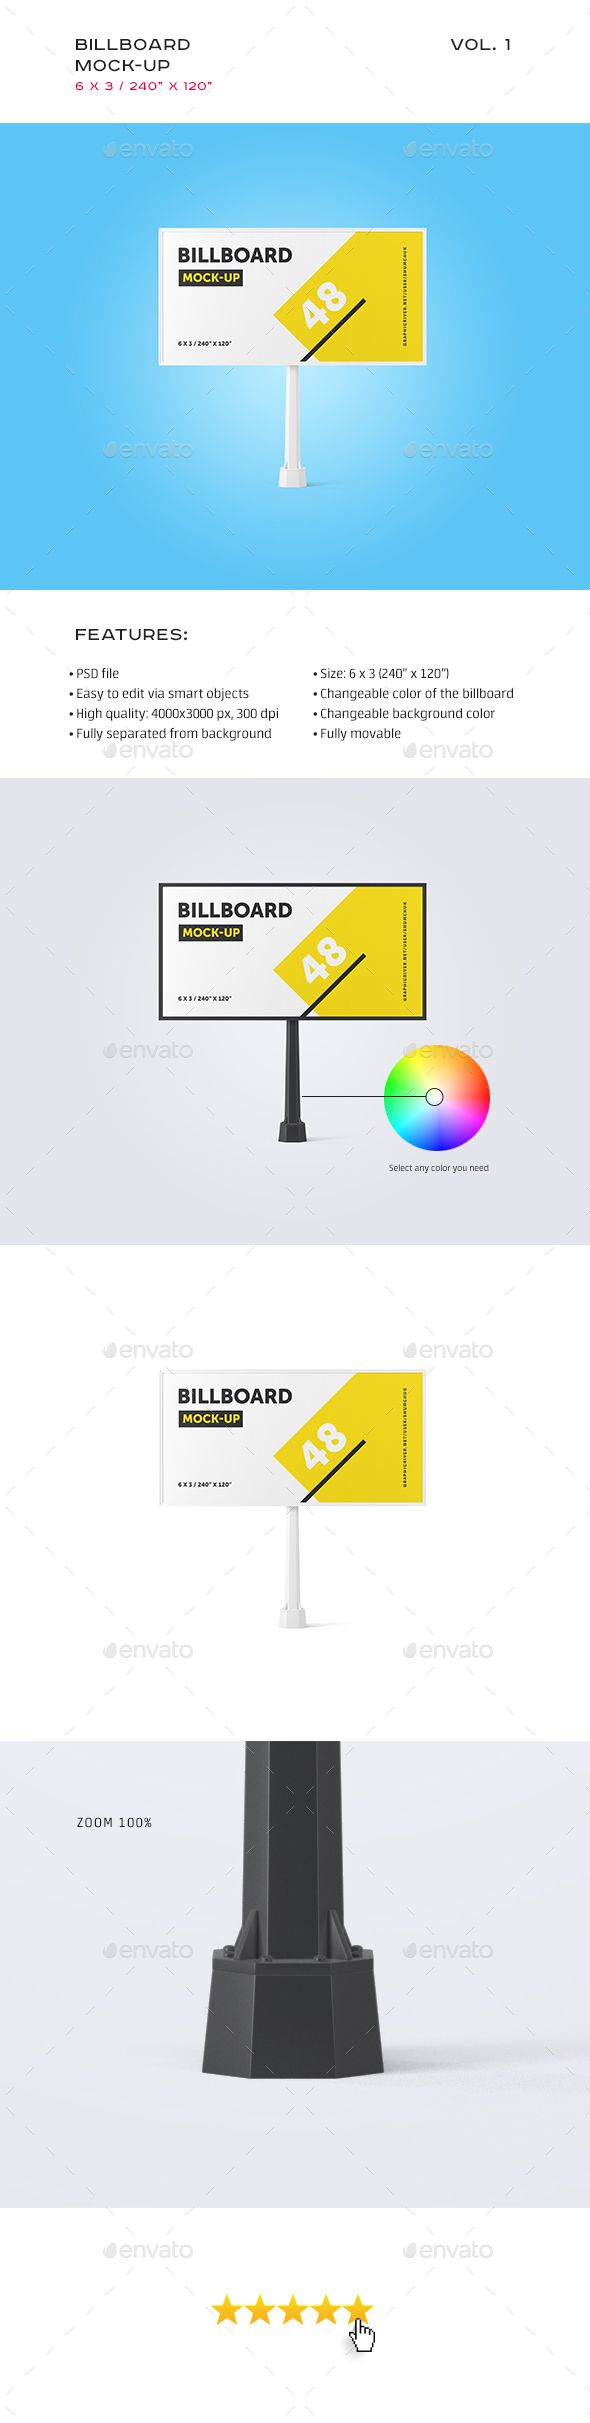 Studio Billboard Mock-up 63 vol.1 Billboard with super high quality 40003000 pixels 300DPI. It is fully separated from background